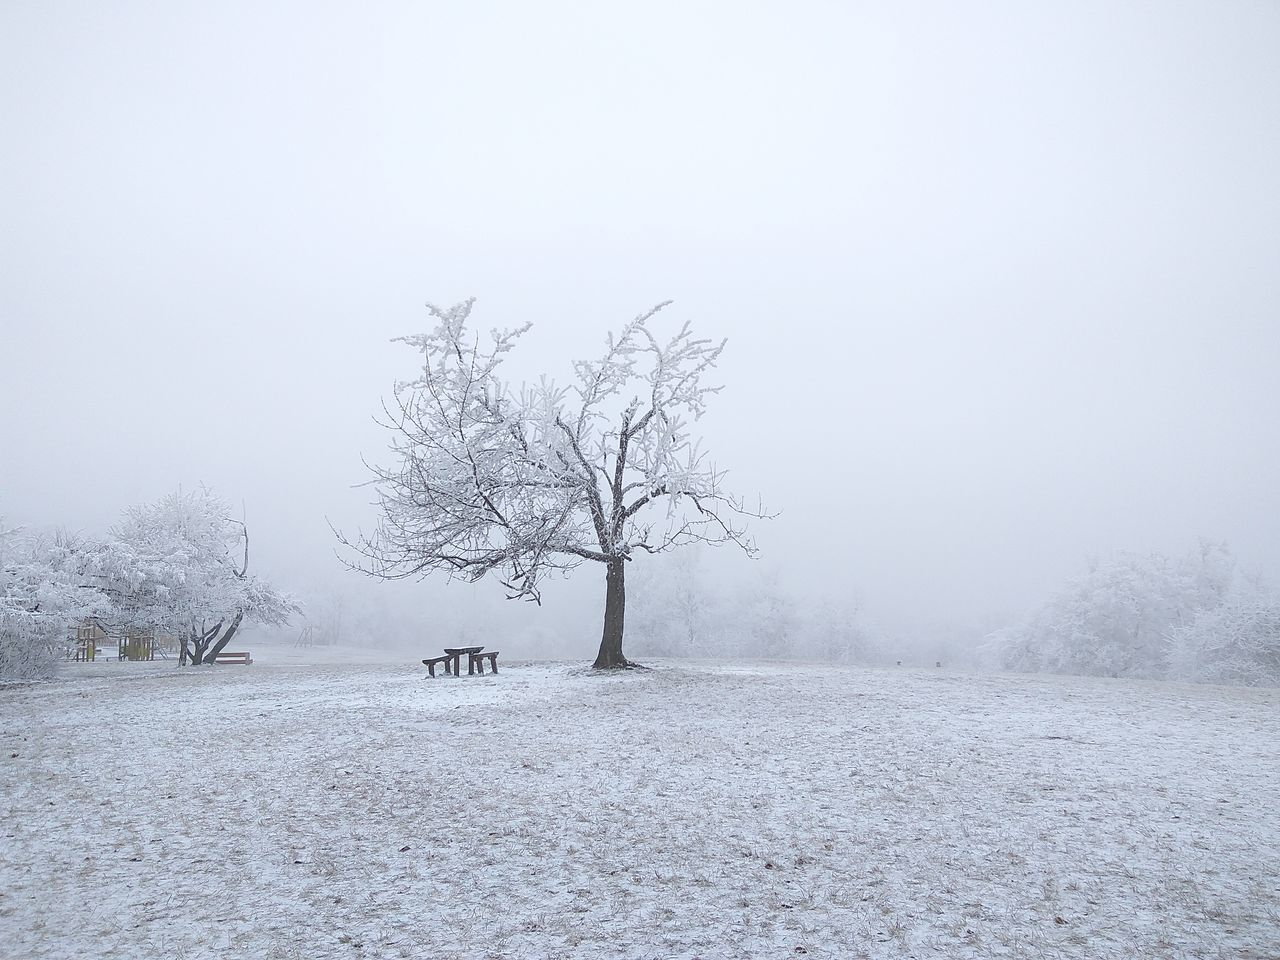 snow Bare Tree No People Tree Nature Cold Temperature Day Sky Beauty In Nature Outdoors Xiaomiphotograph Normafa Hungary Beauty In Nature Backgrounds Tree Weather Snowing